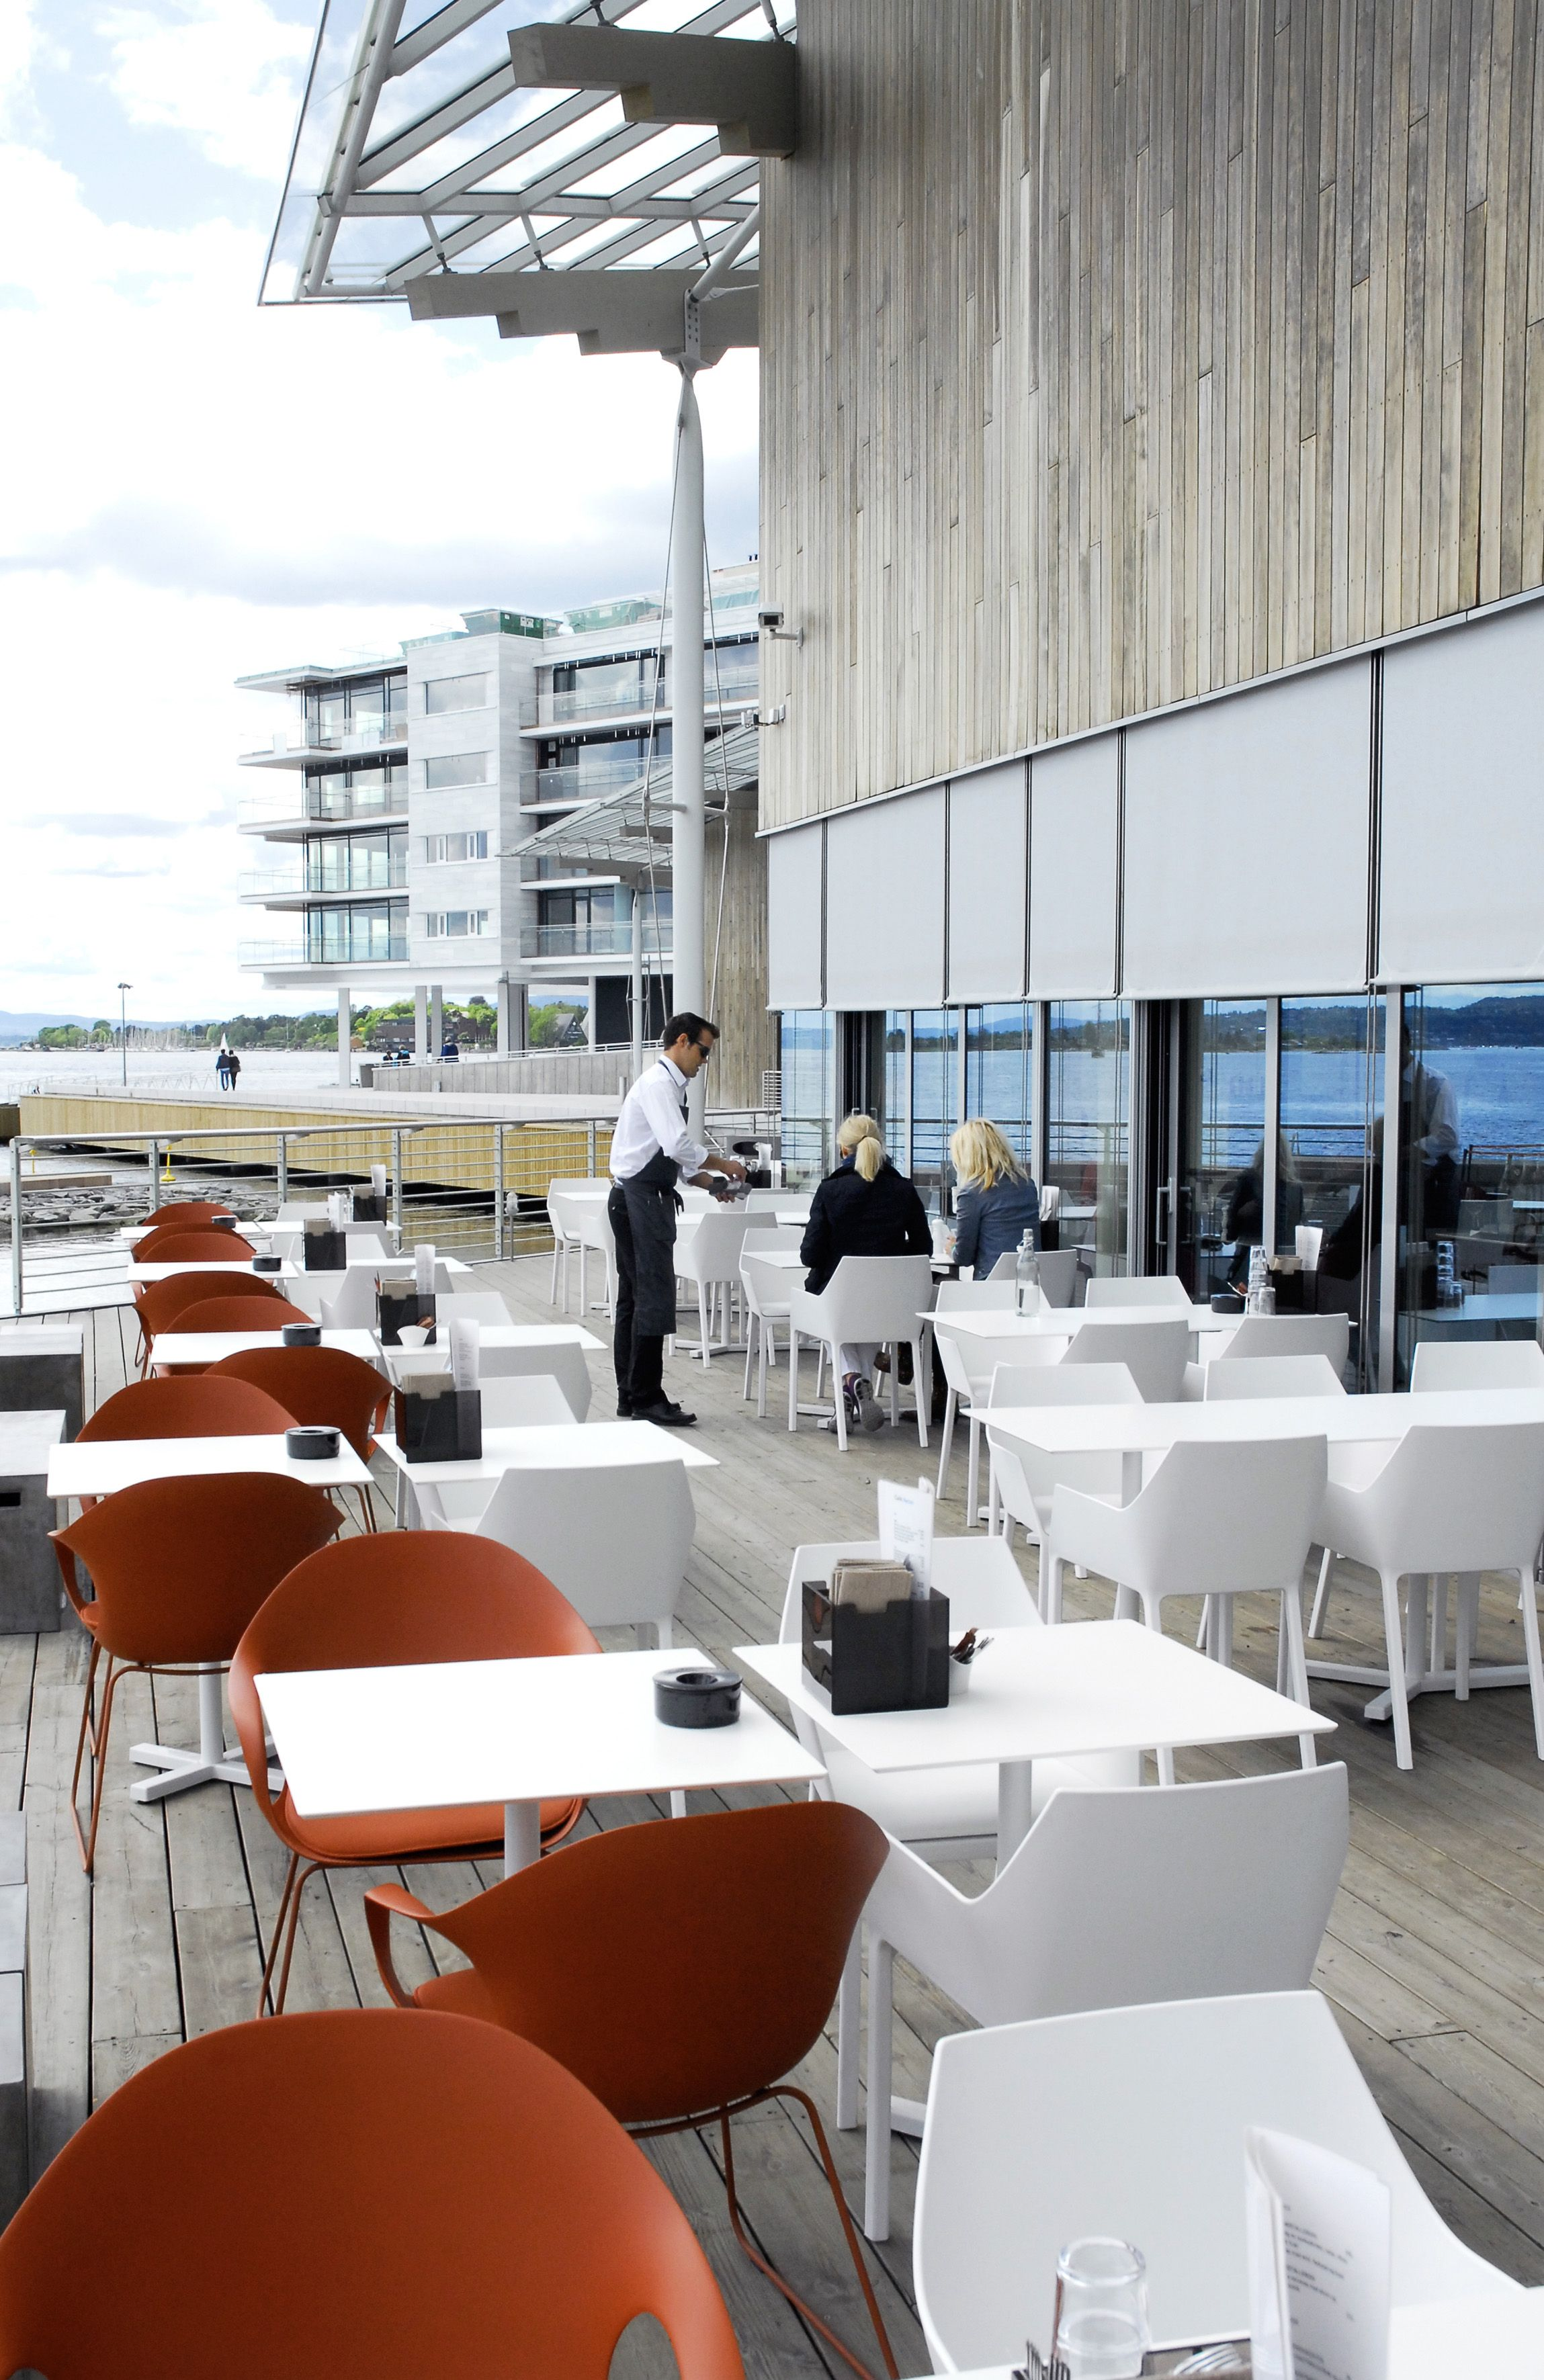 Astrup Fearnley Museet, Oslo (N) - Pulp + Elephant chairs for Kristalia #oslo #astrupfearnleymuseet #renzopiano #outdoors #outdoor #outdoorliving #outdoordesign